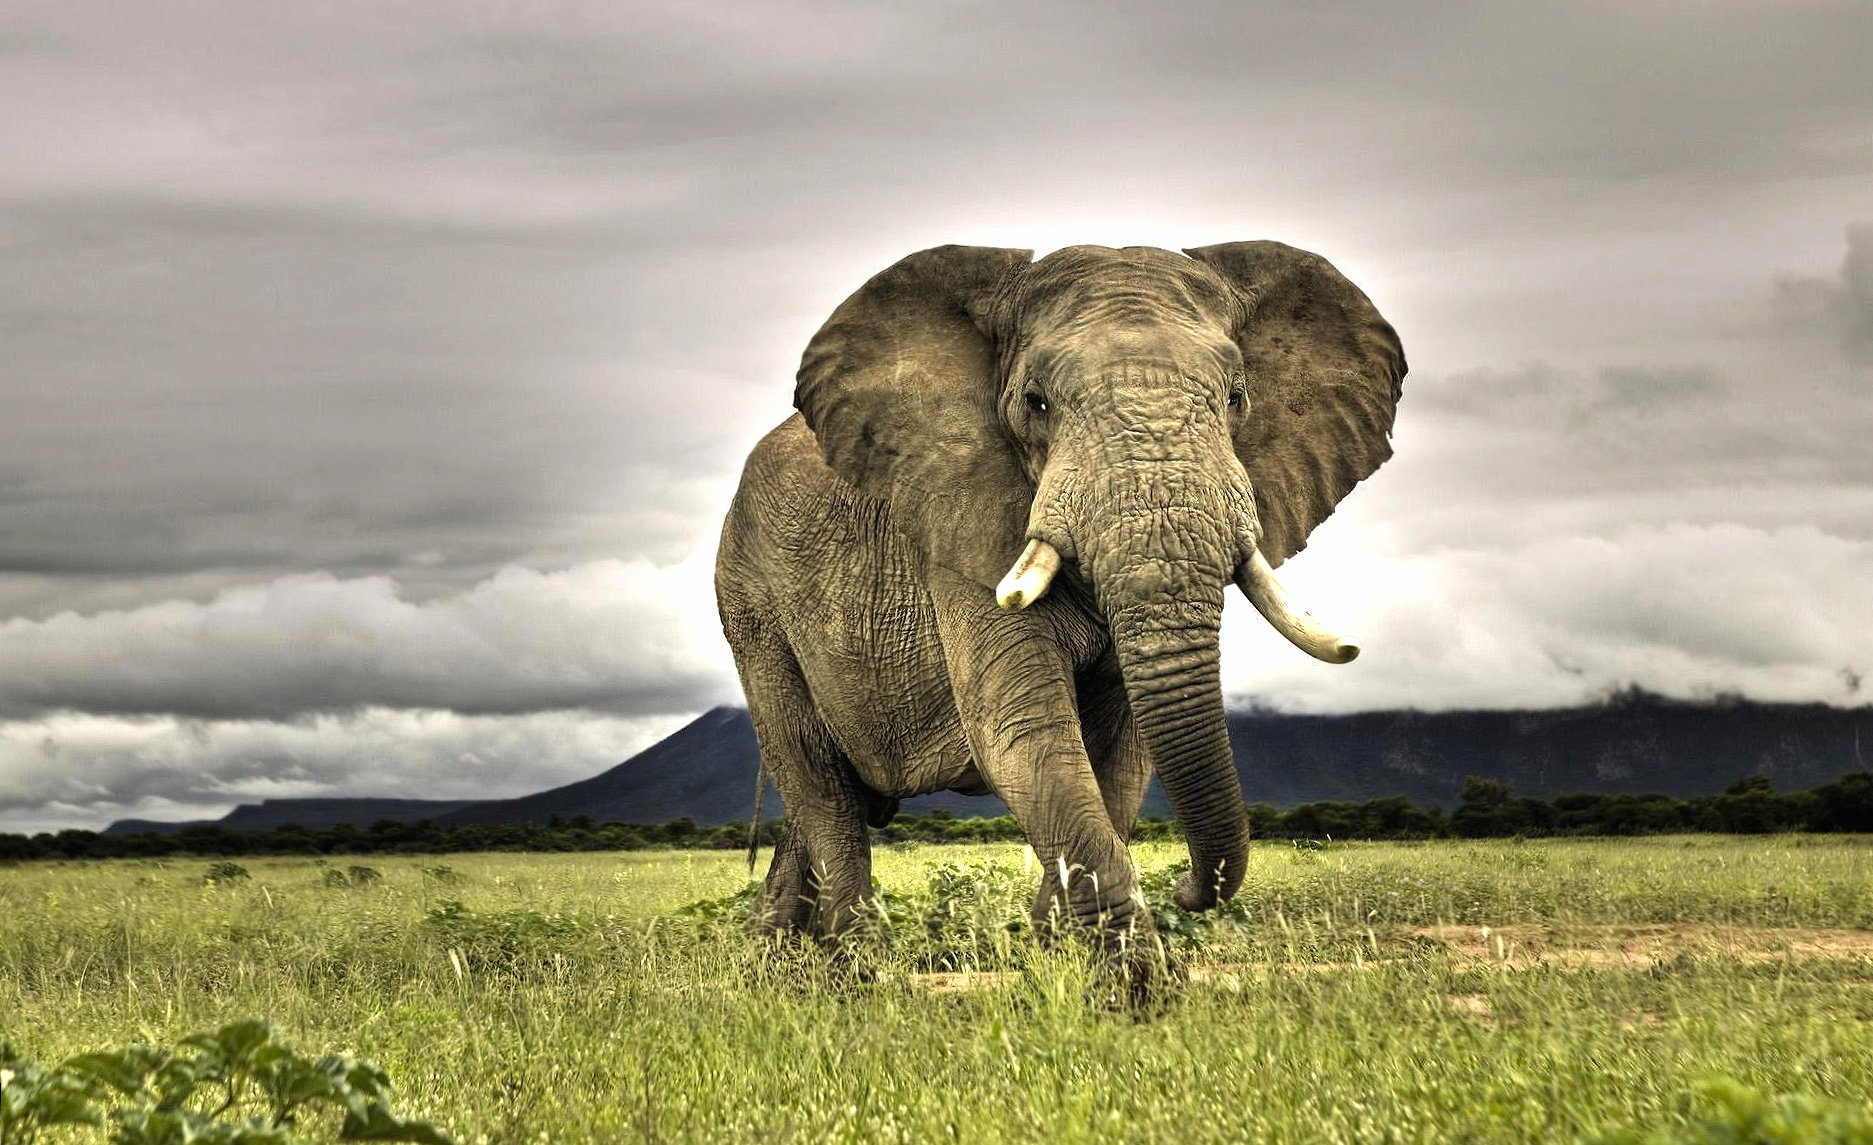 Giant african elephant wallpapers HD quality